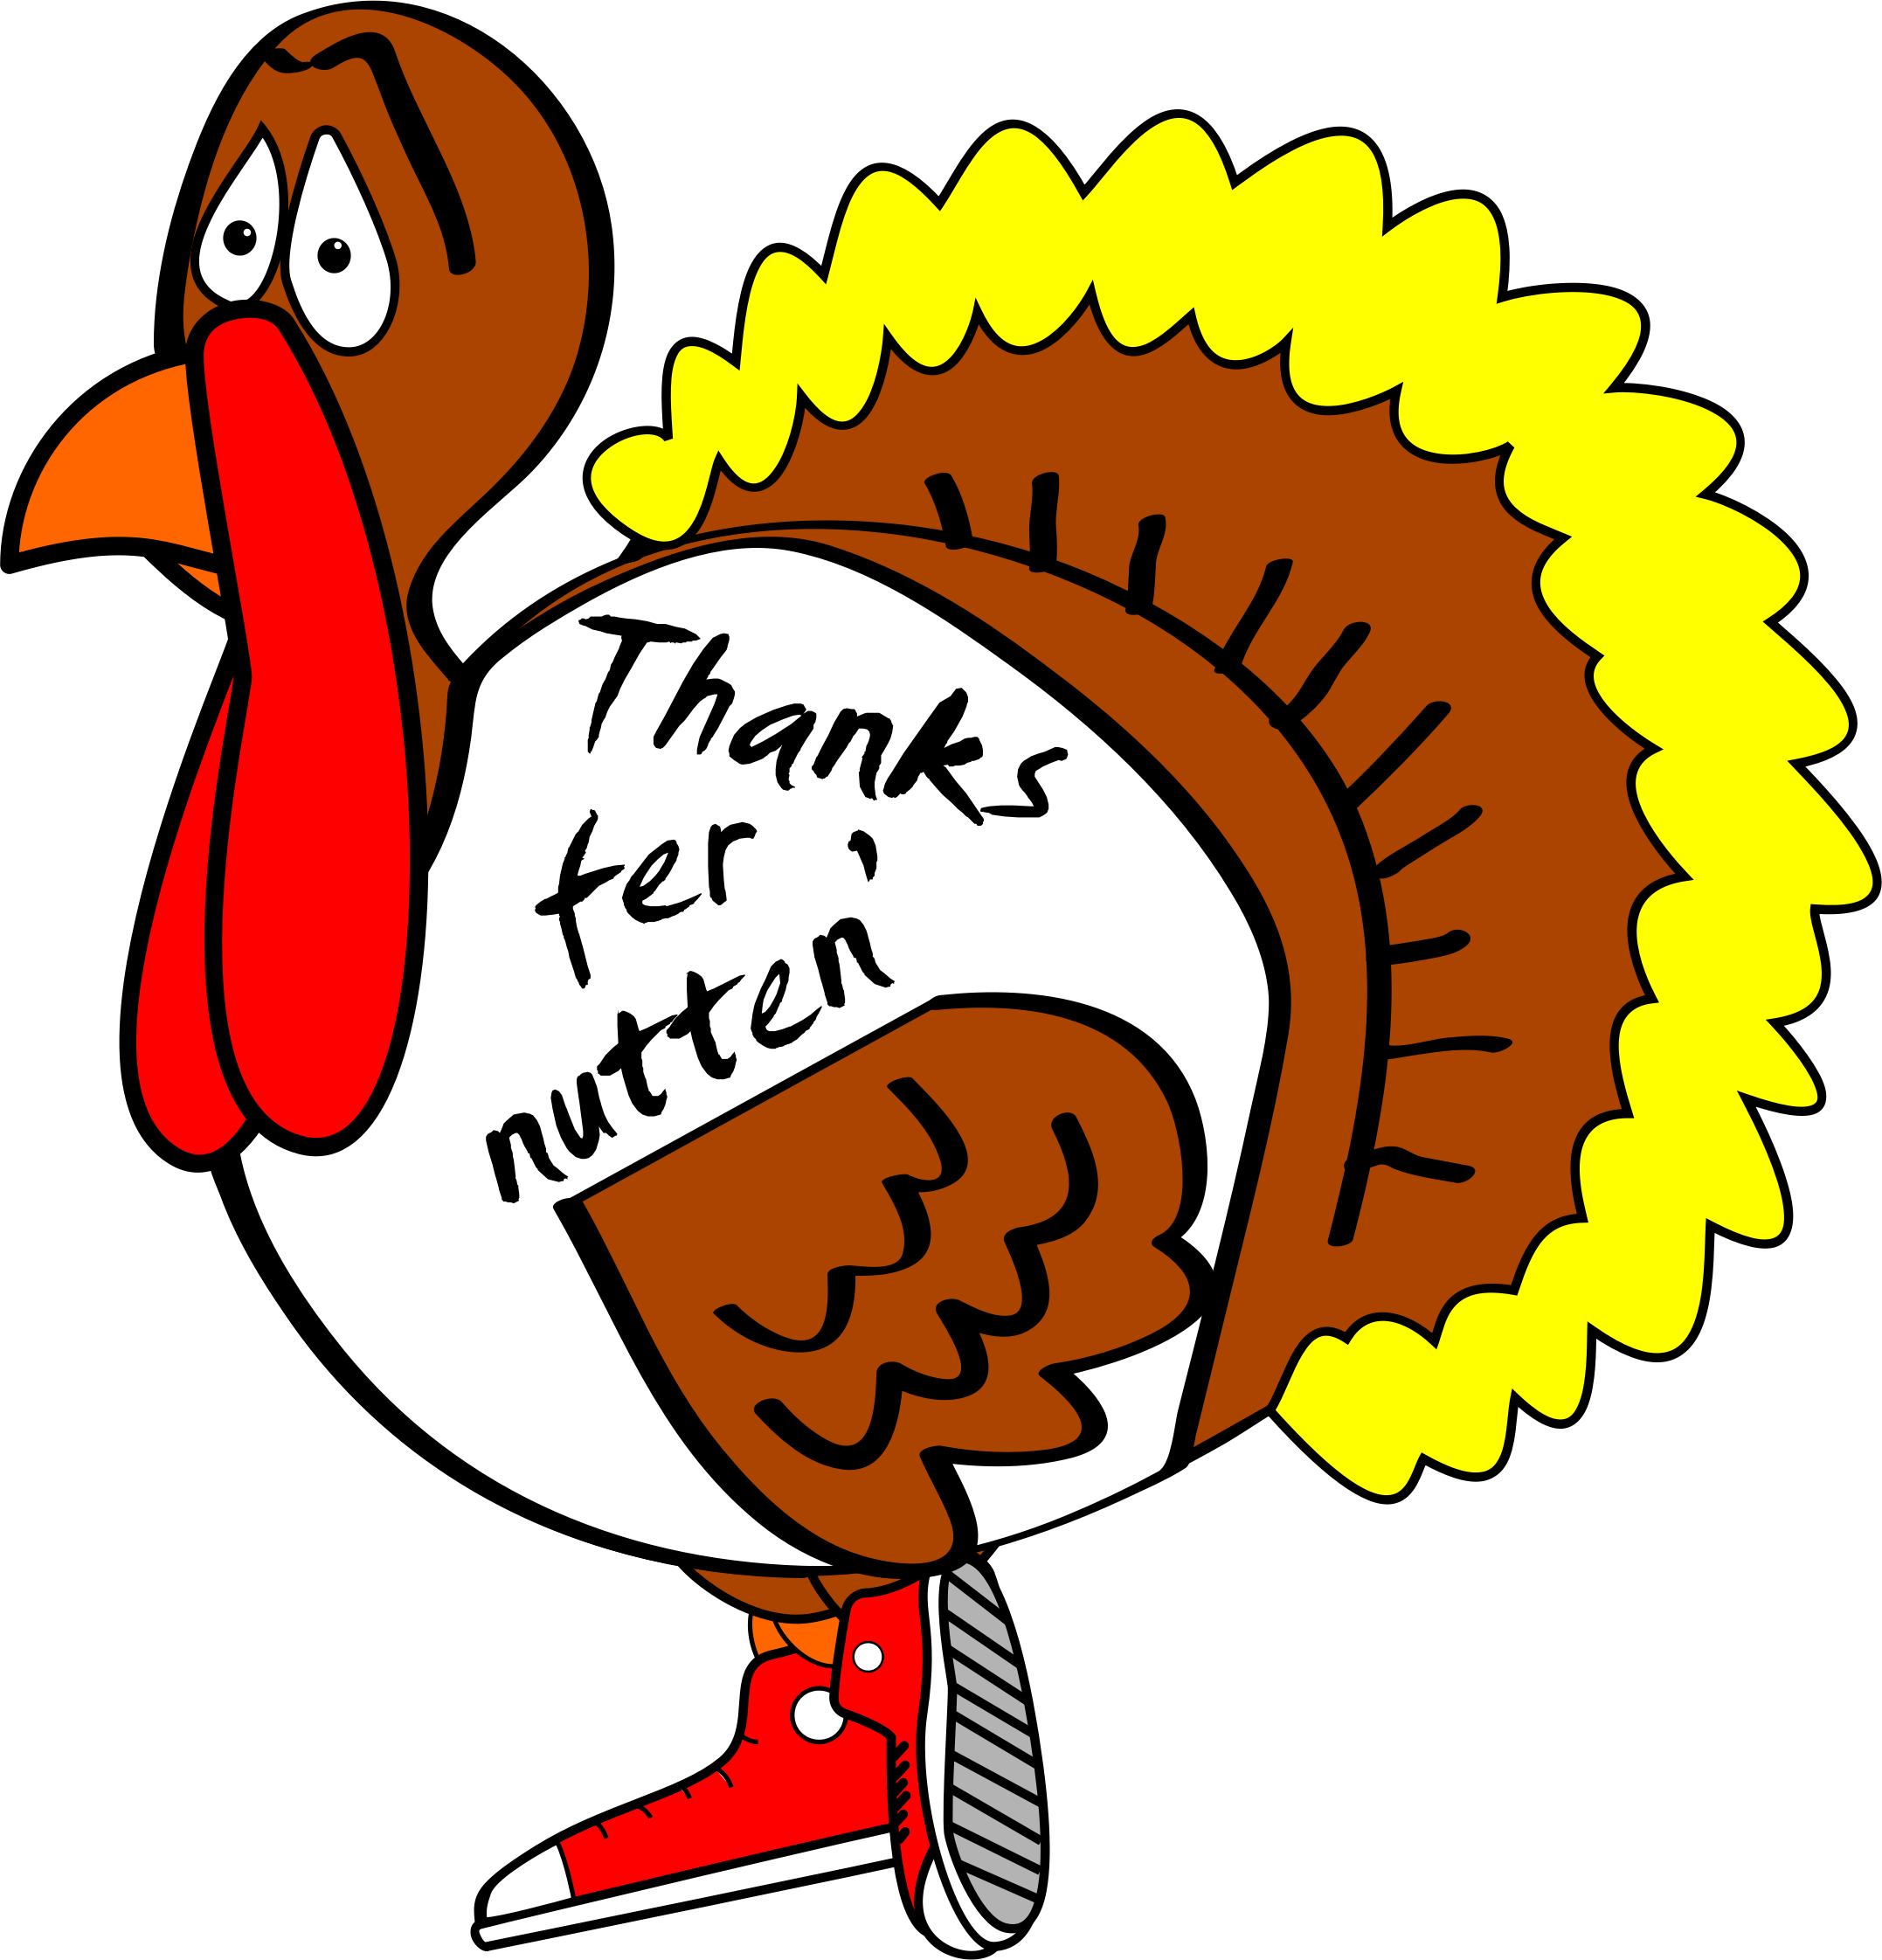 Silly at getdrawings com. Dog turkey clipart